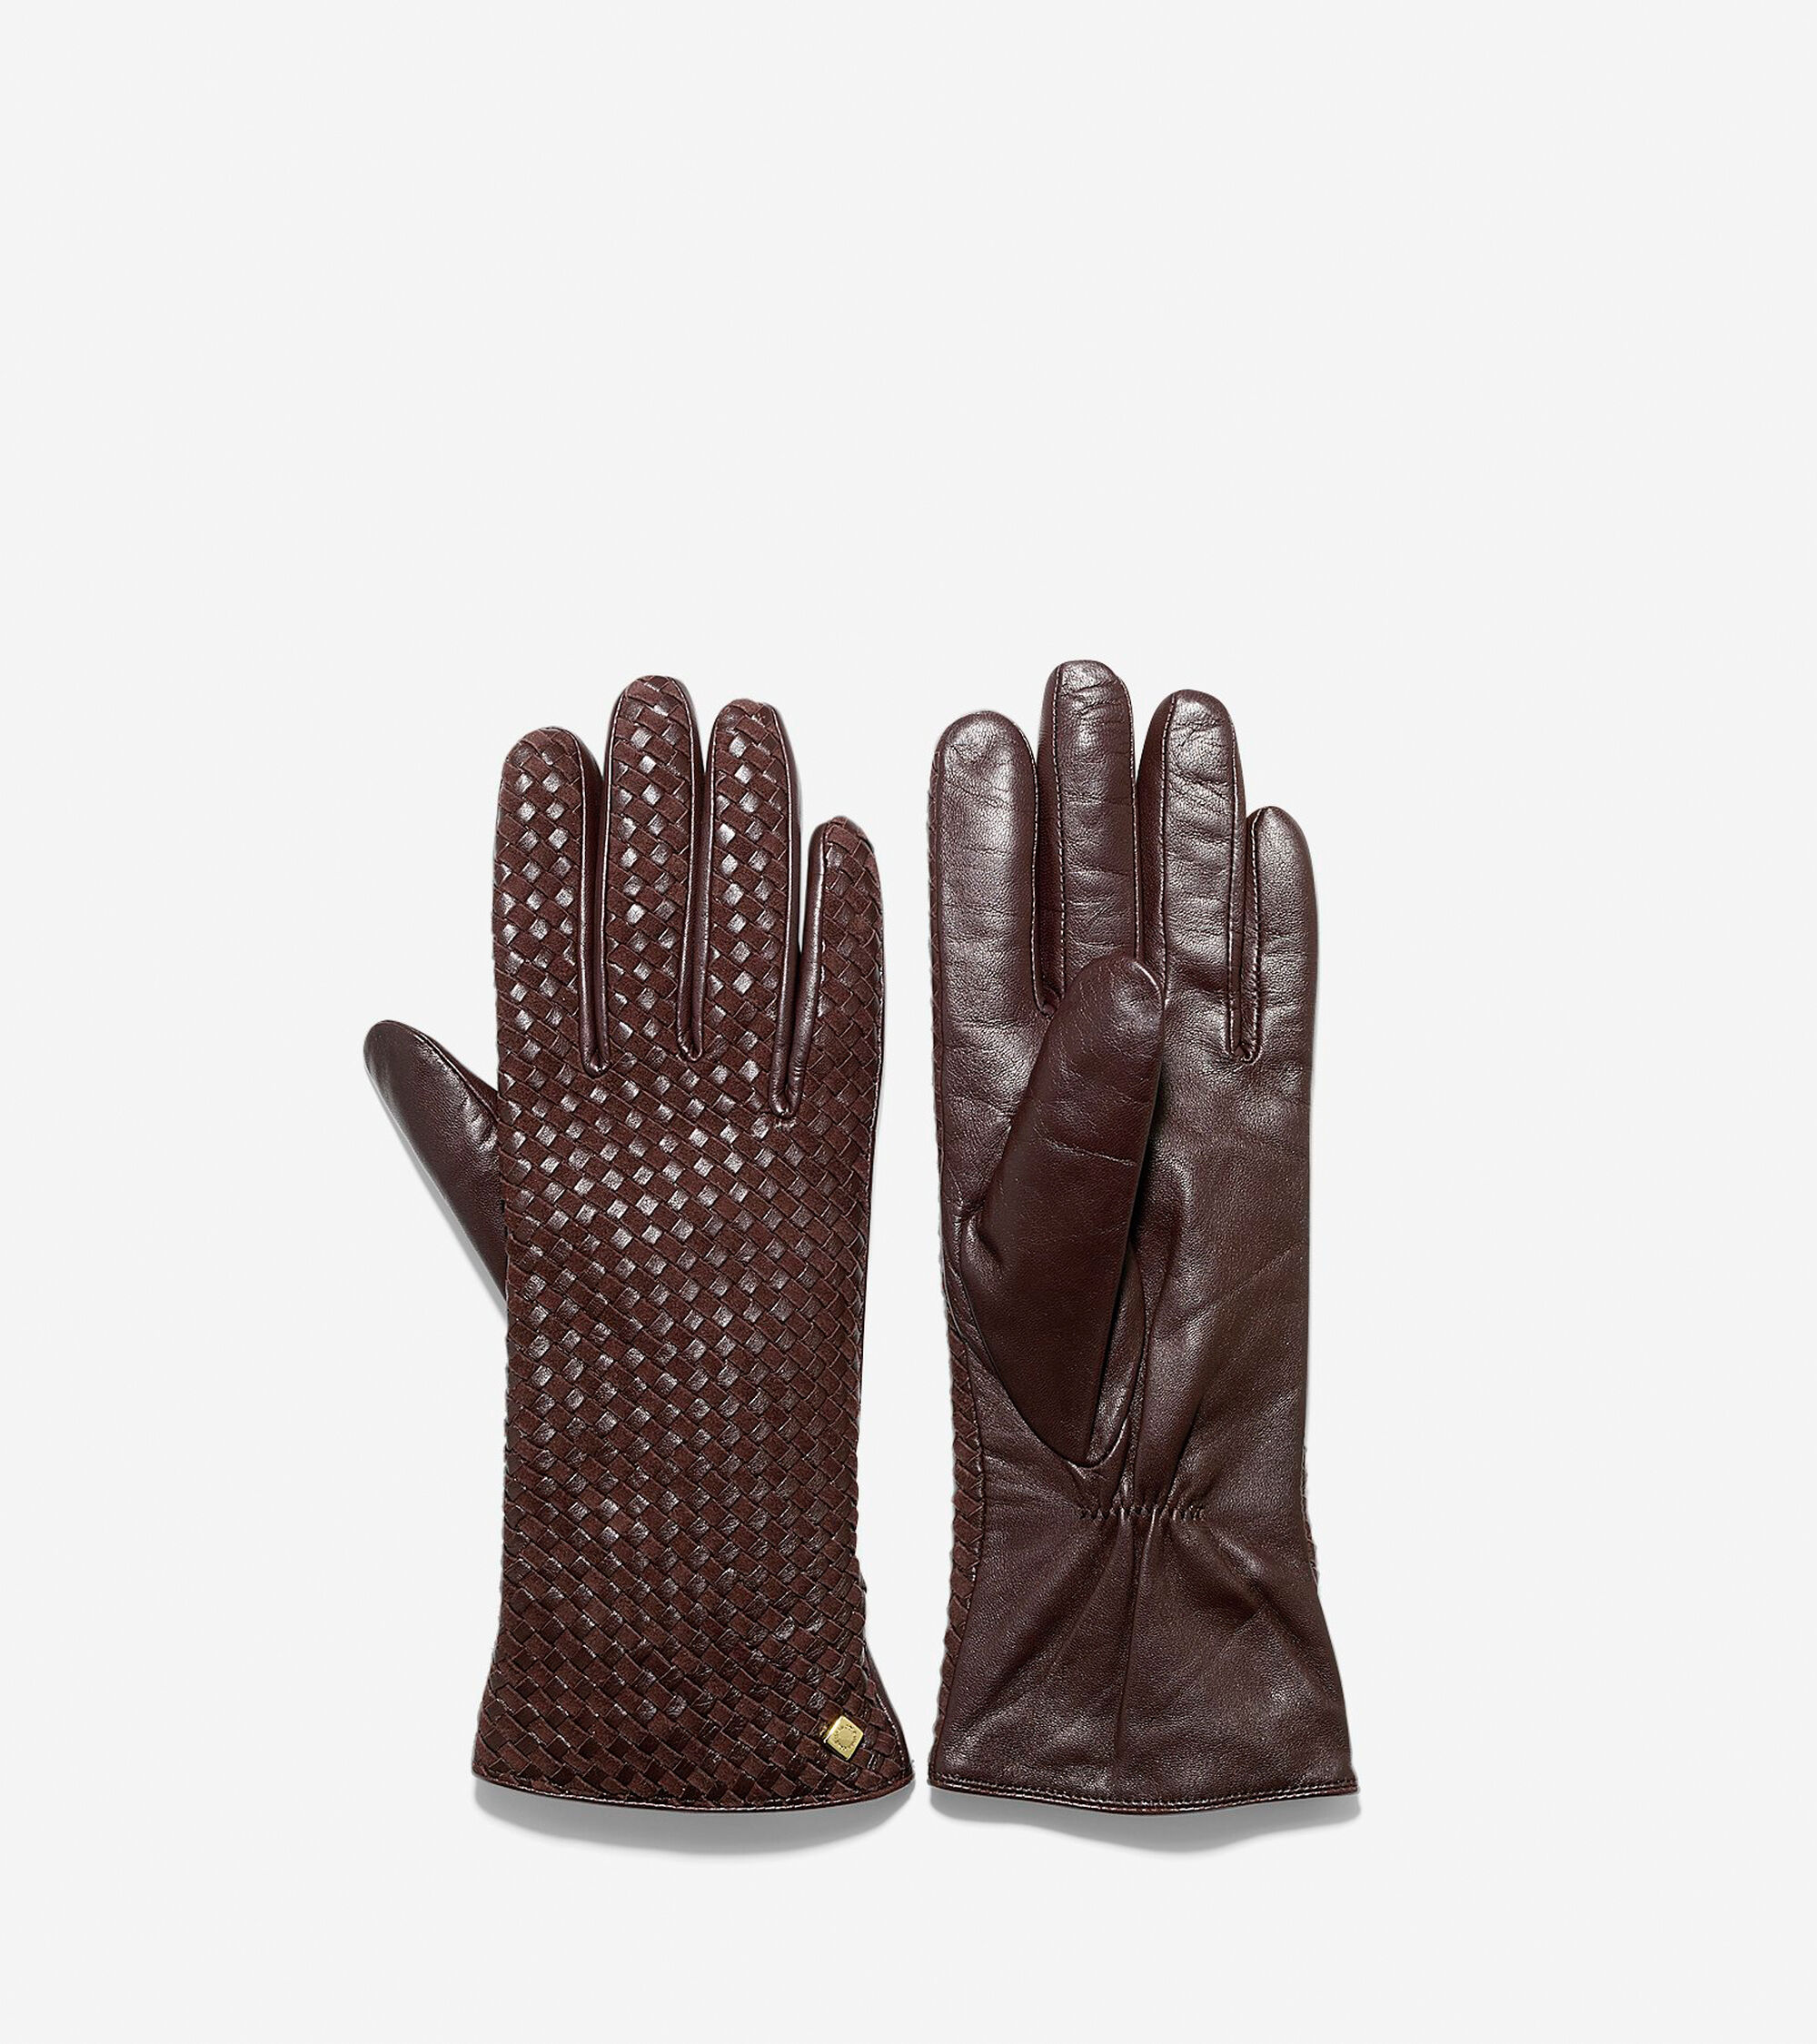 Cole haan black leather gloves - Lambskin Braided Leather Gloves Lambskin Braided Leather Gloves Colehaan